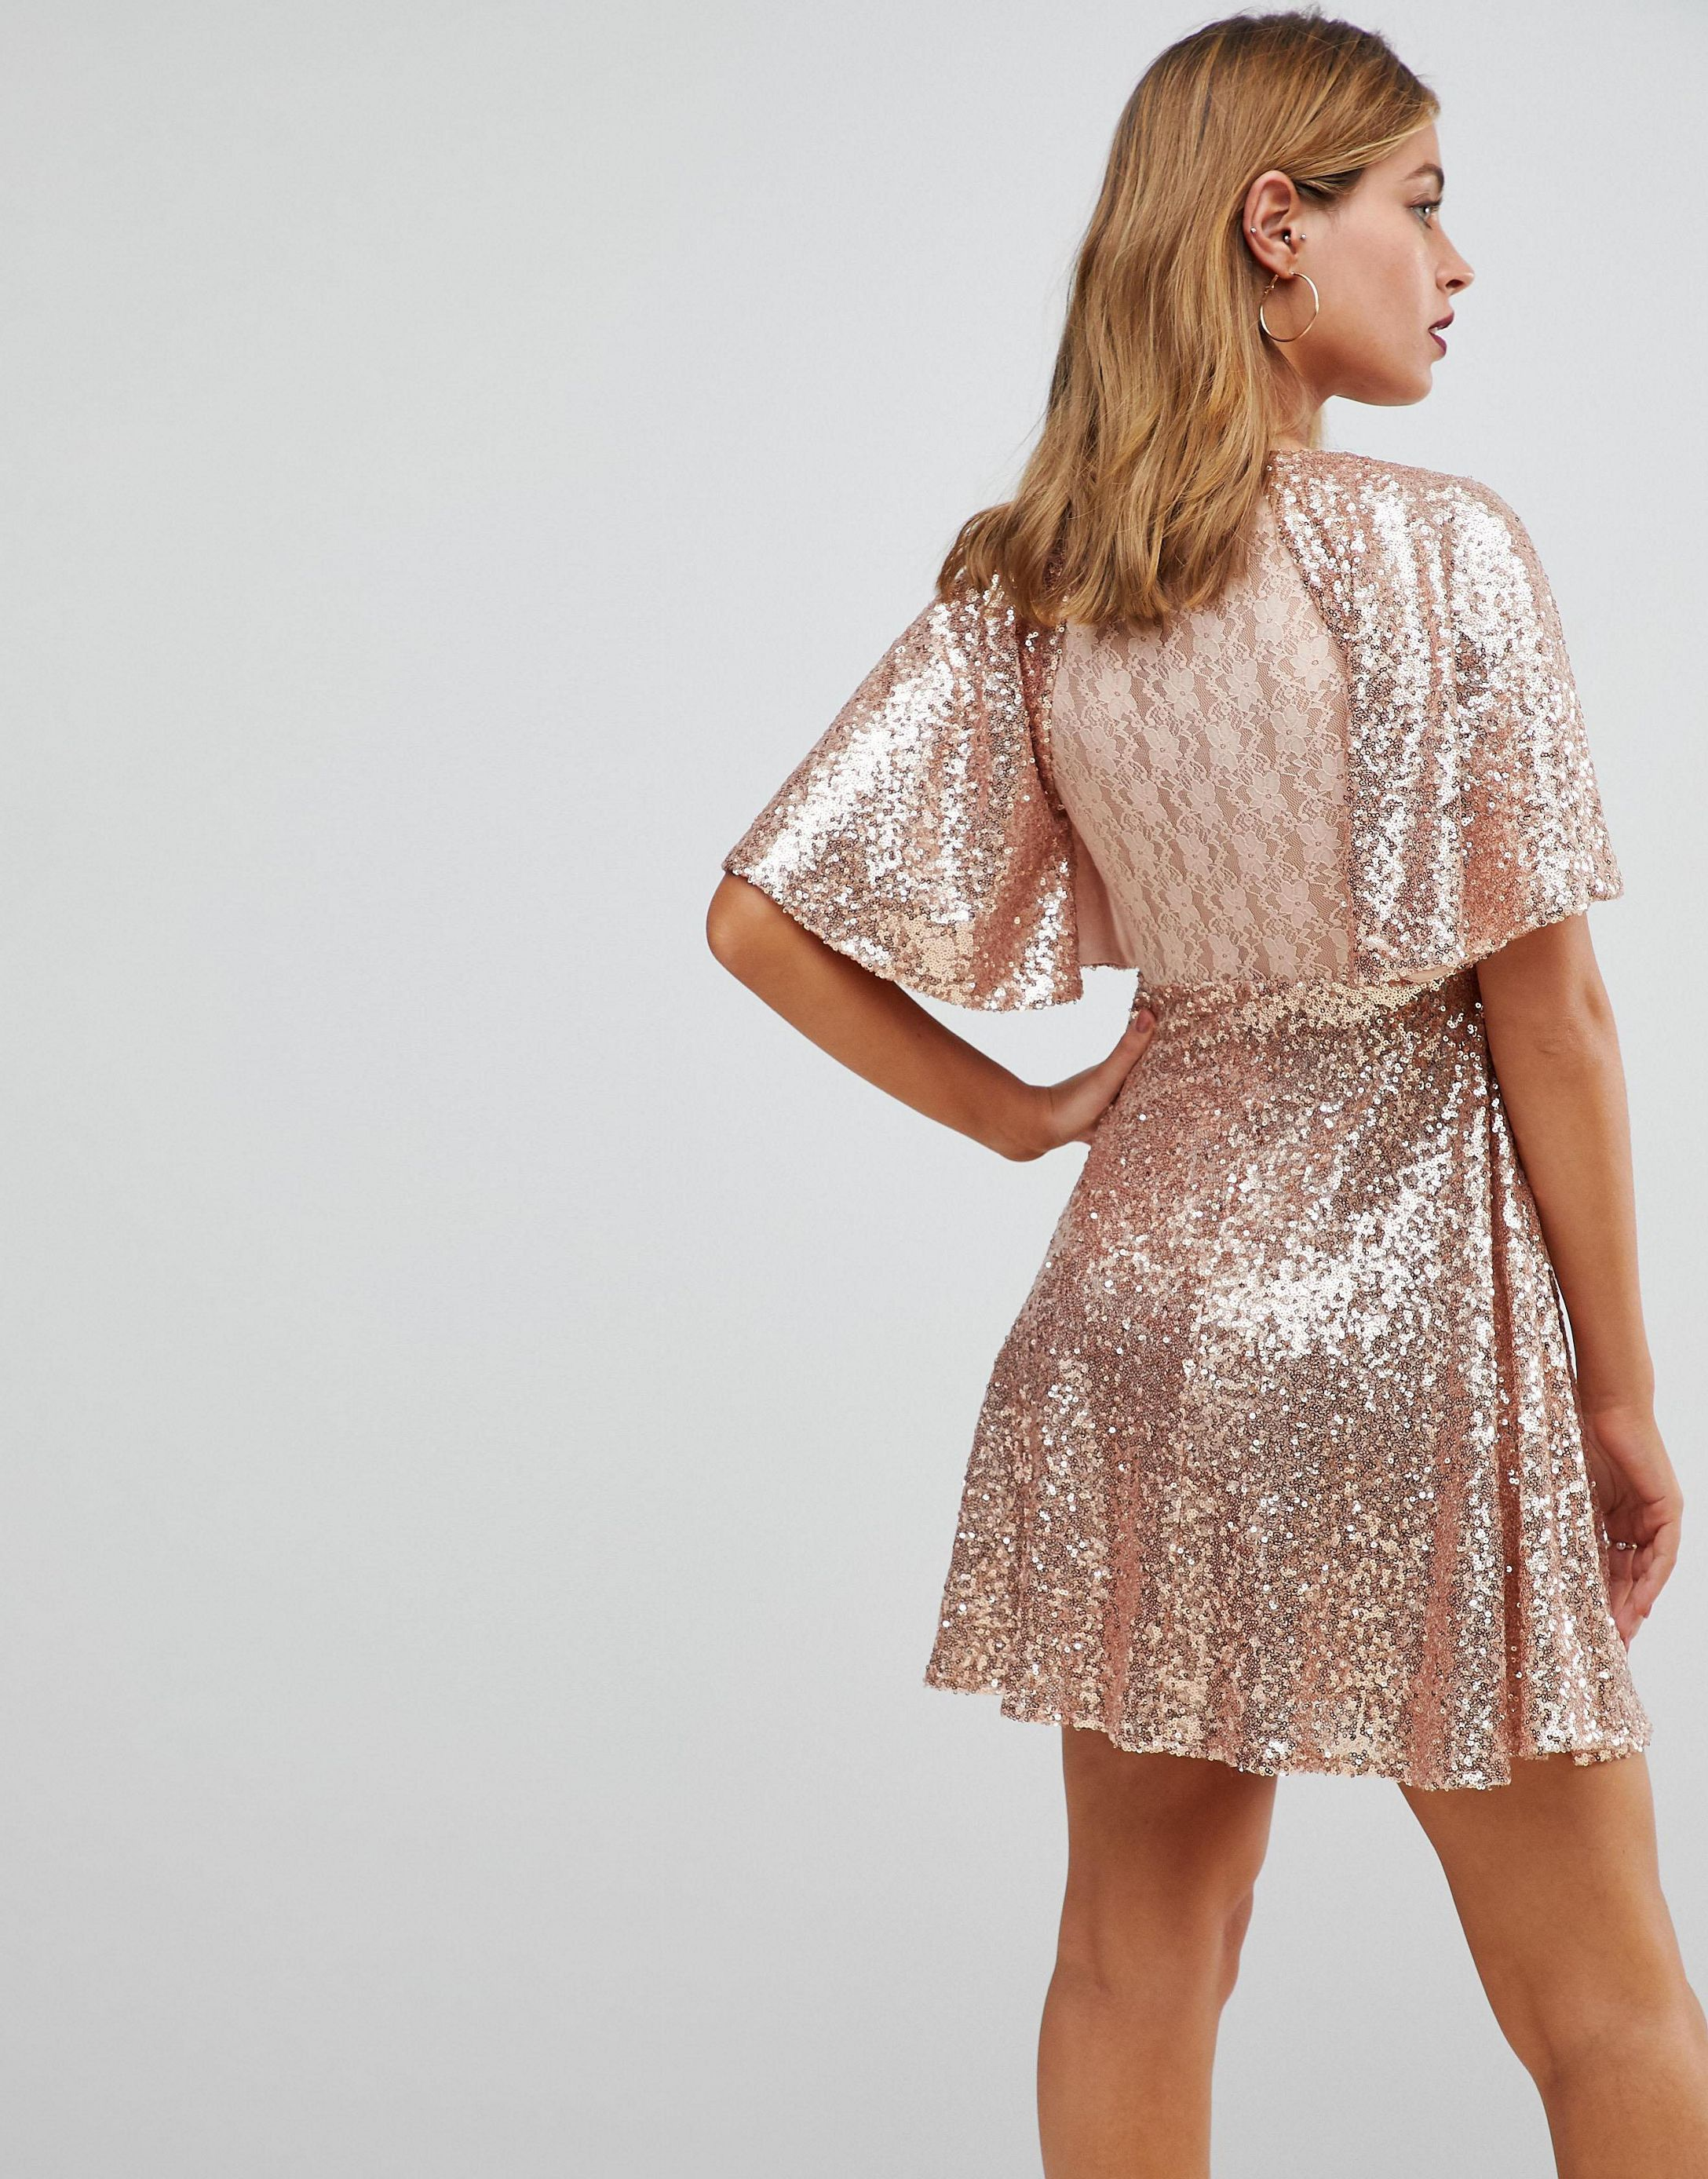 ★ASOS★ PETITE Sequin Fluted スリーブ Lace ミニ ワンピース